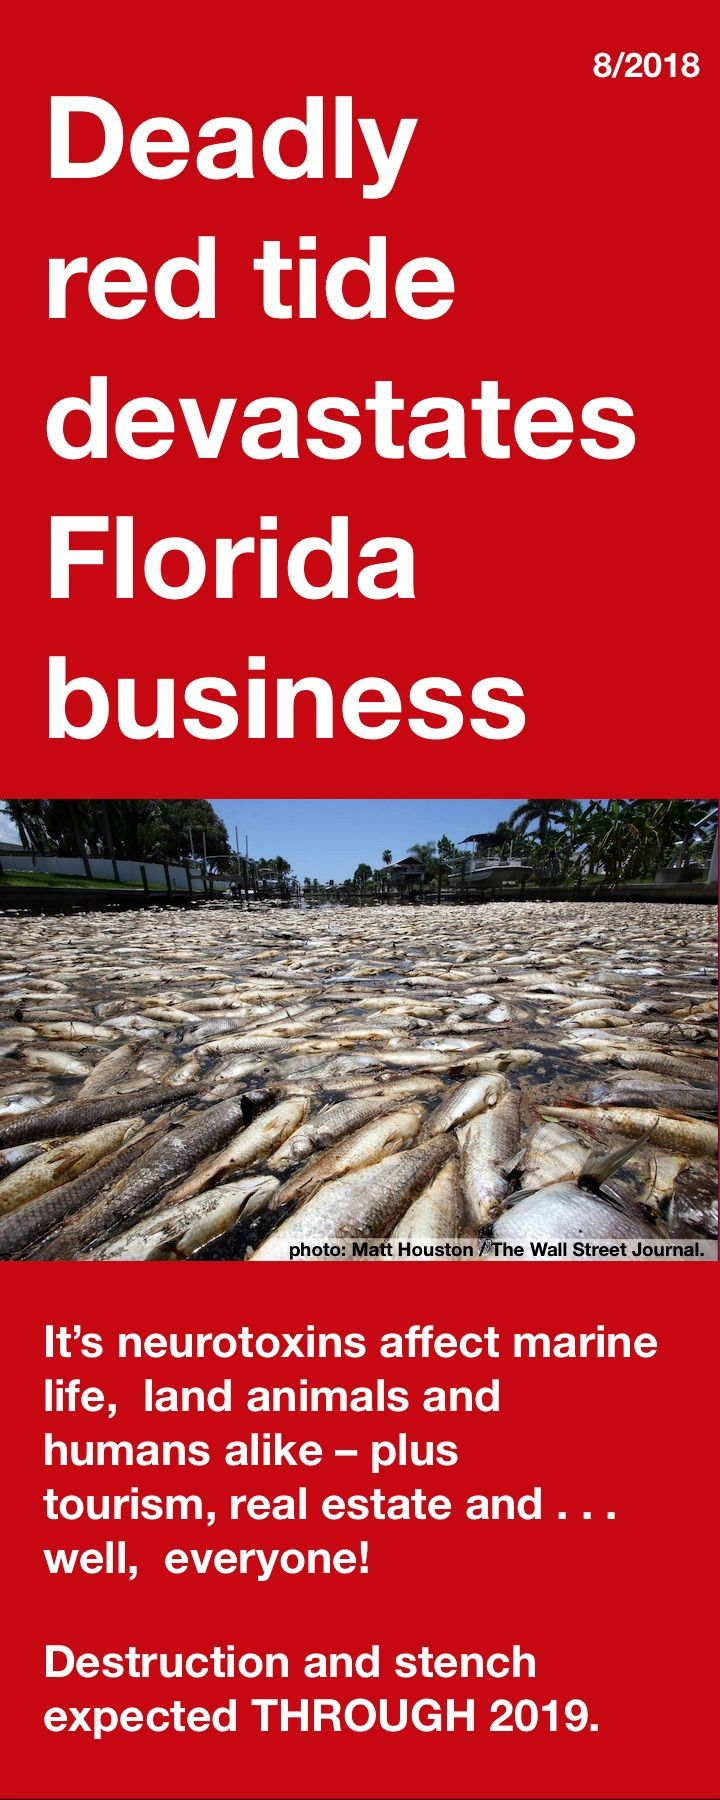 Deadly red tide devastates business as 267 TONS of fish